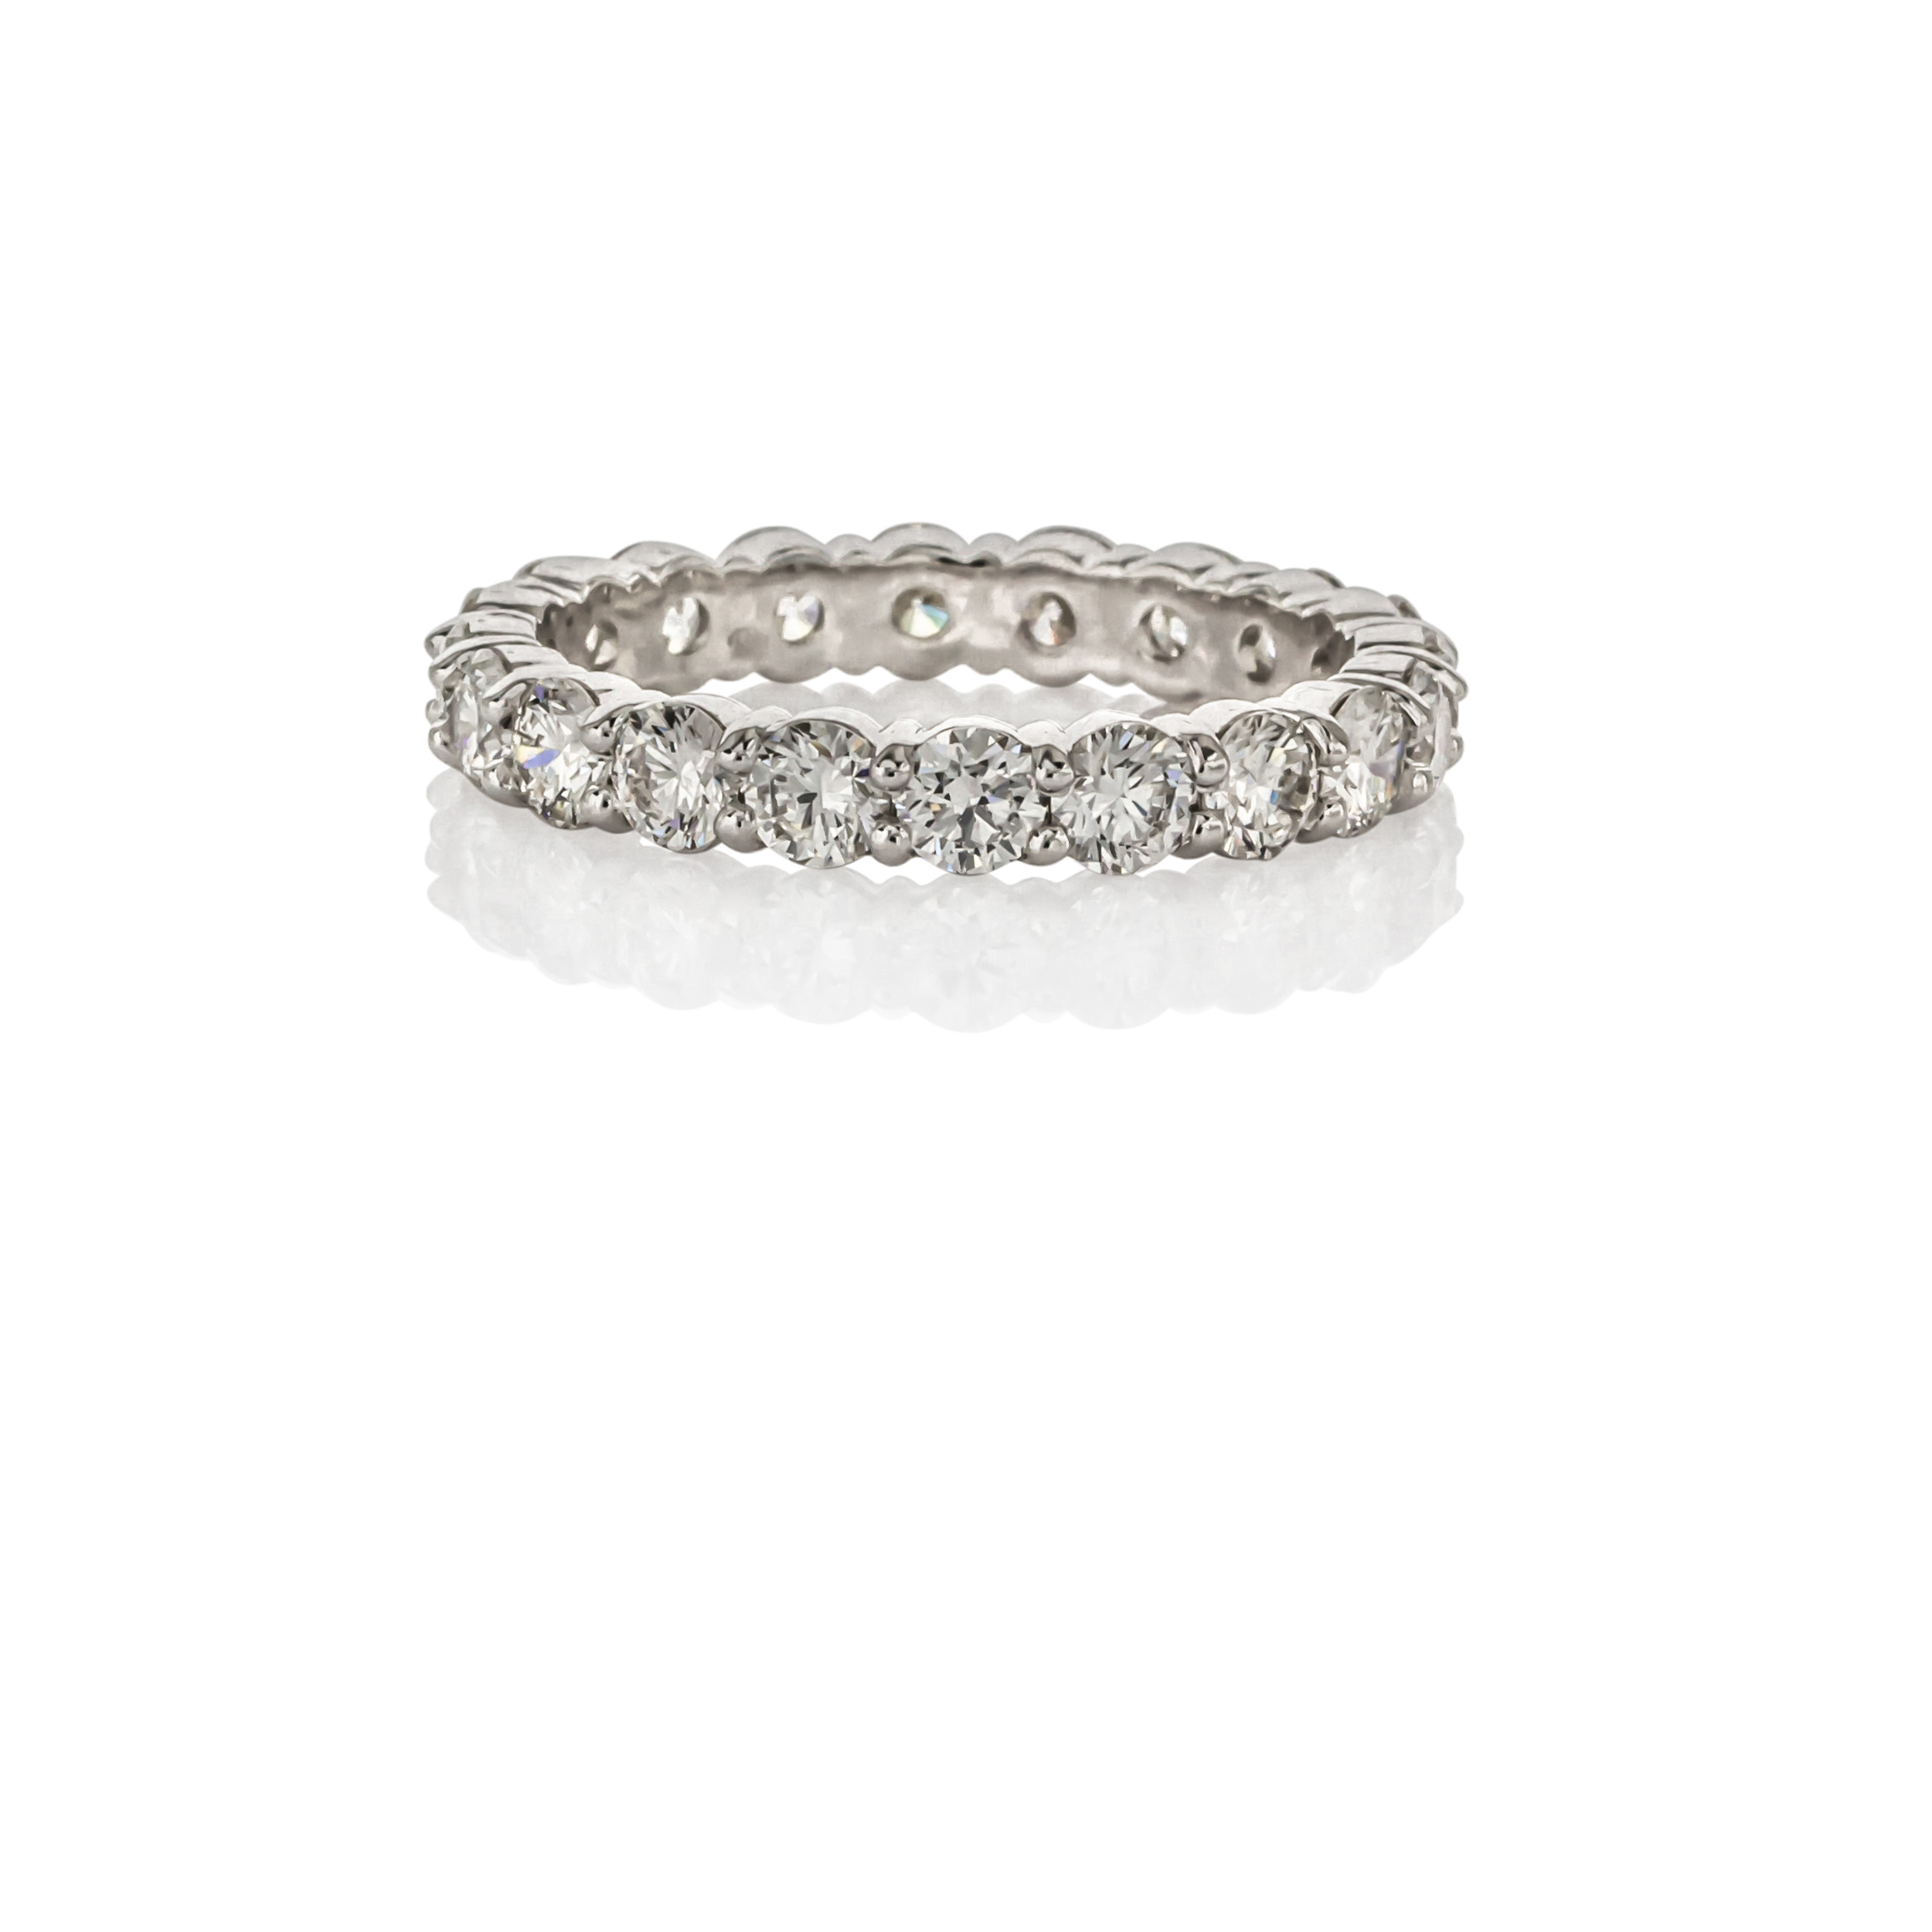 CUSTOM SHARED PRONG DIAMOND ETERNITY BAND